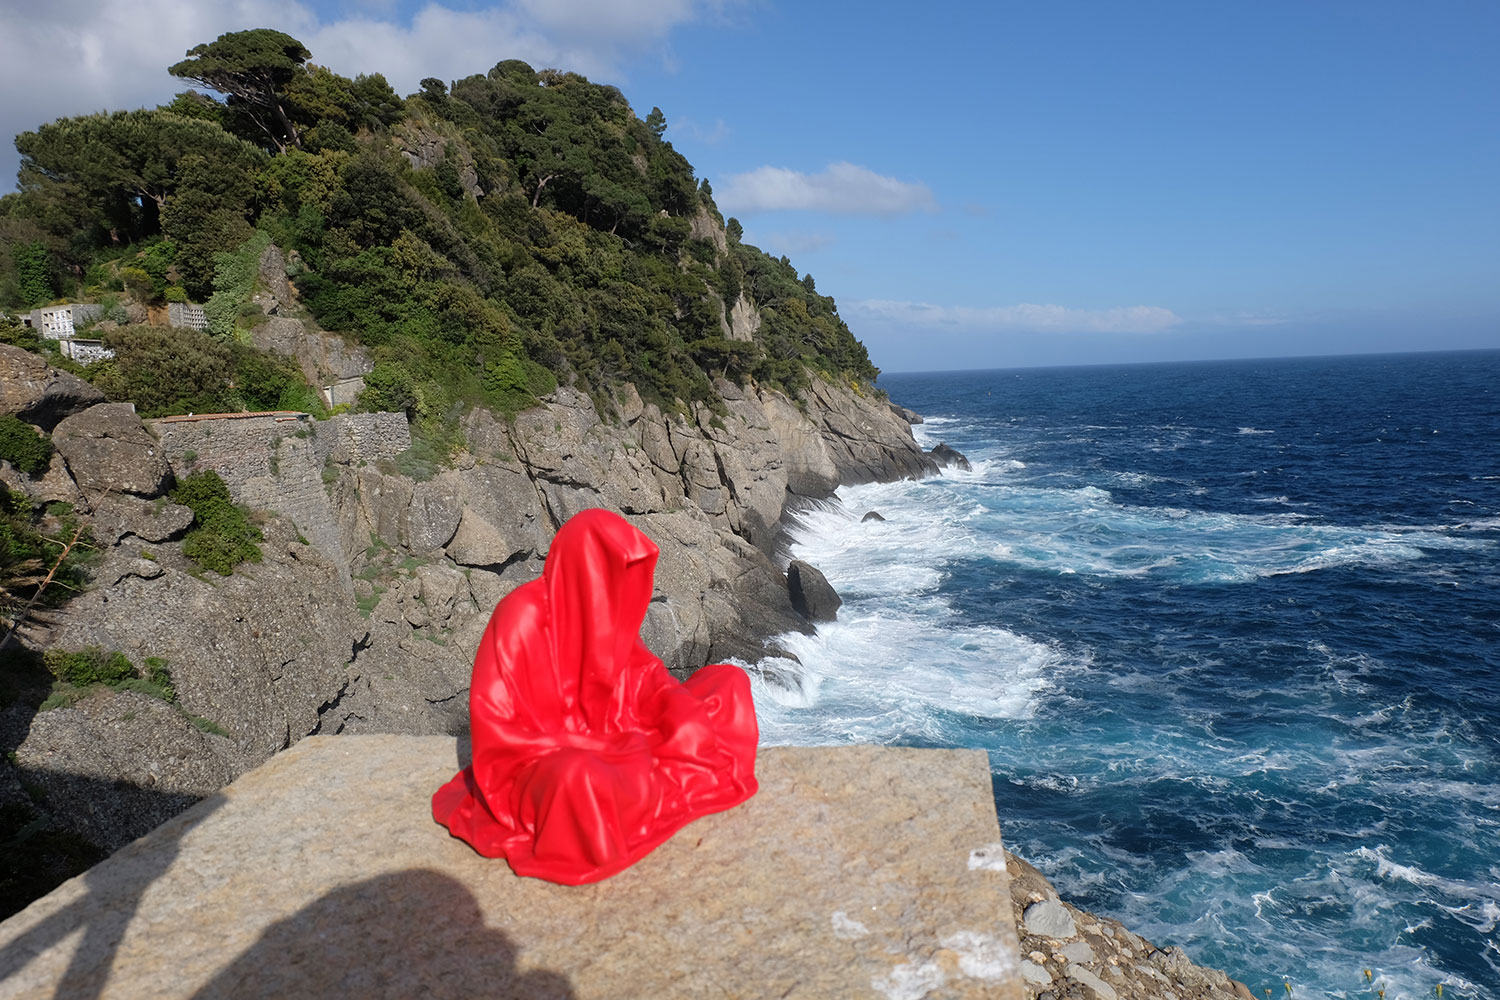 guardians-of-time-manfred-kili-kielnhofer-contemporary-fine-art-sculpture-tour-italy-genova-rapallo-portofino-see-cost-2487